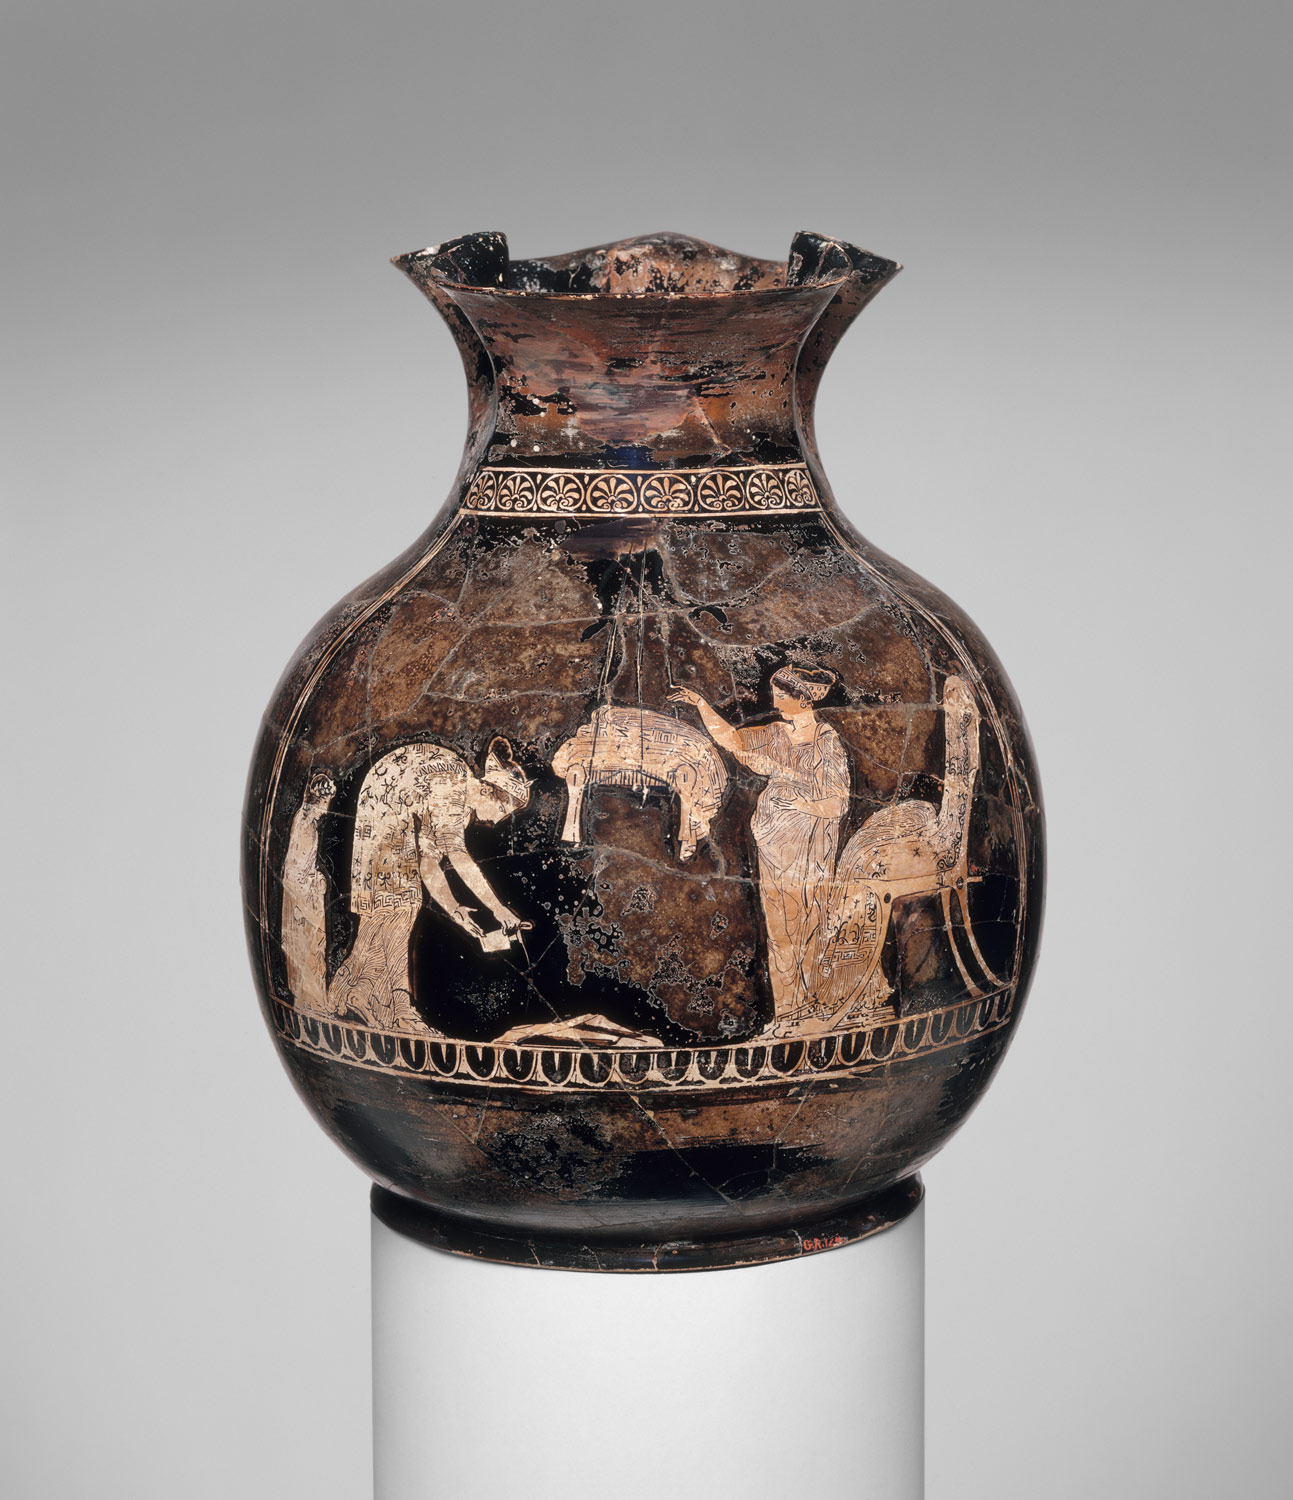 gender roles in ancient greece